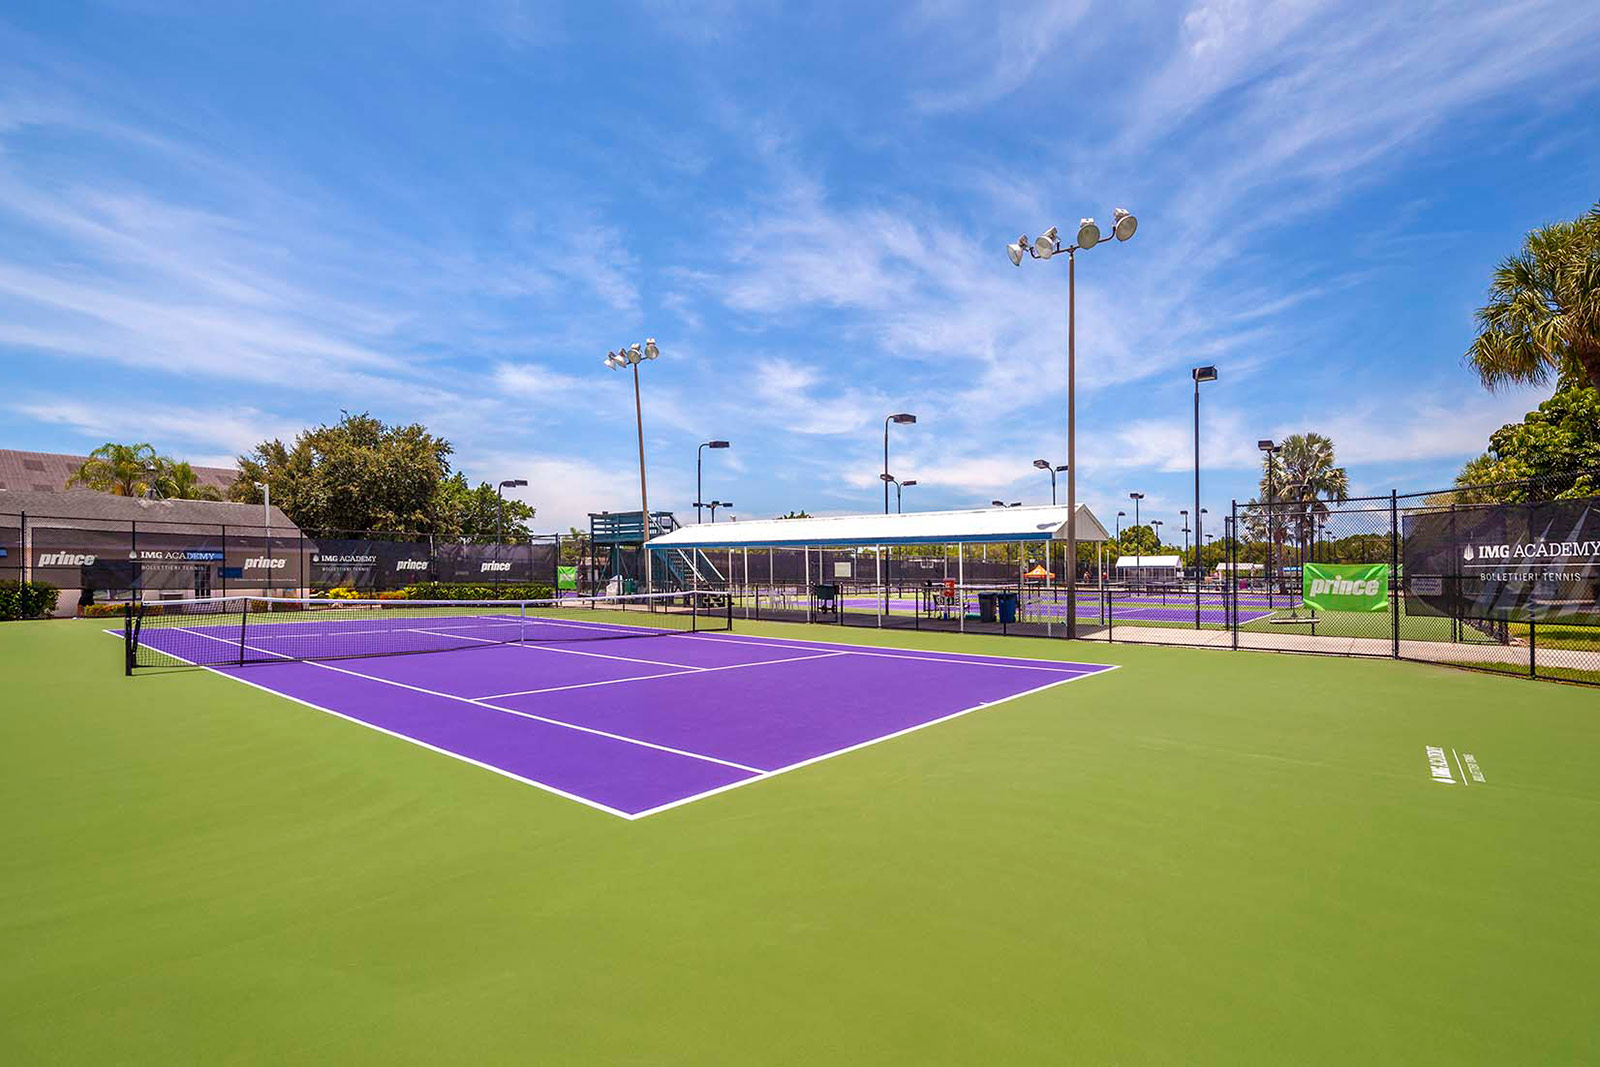 IMG Academy Tennis Courts